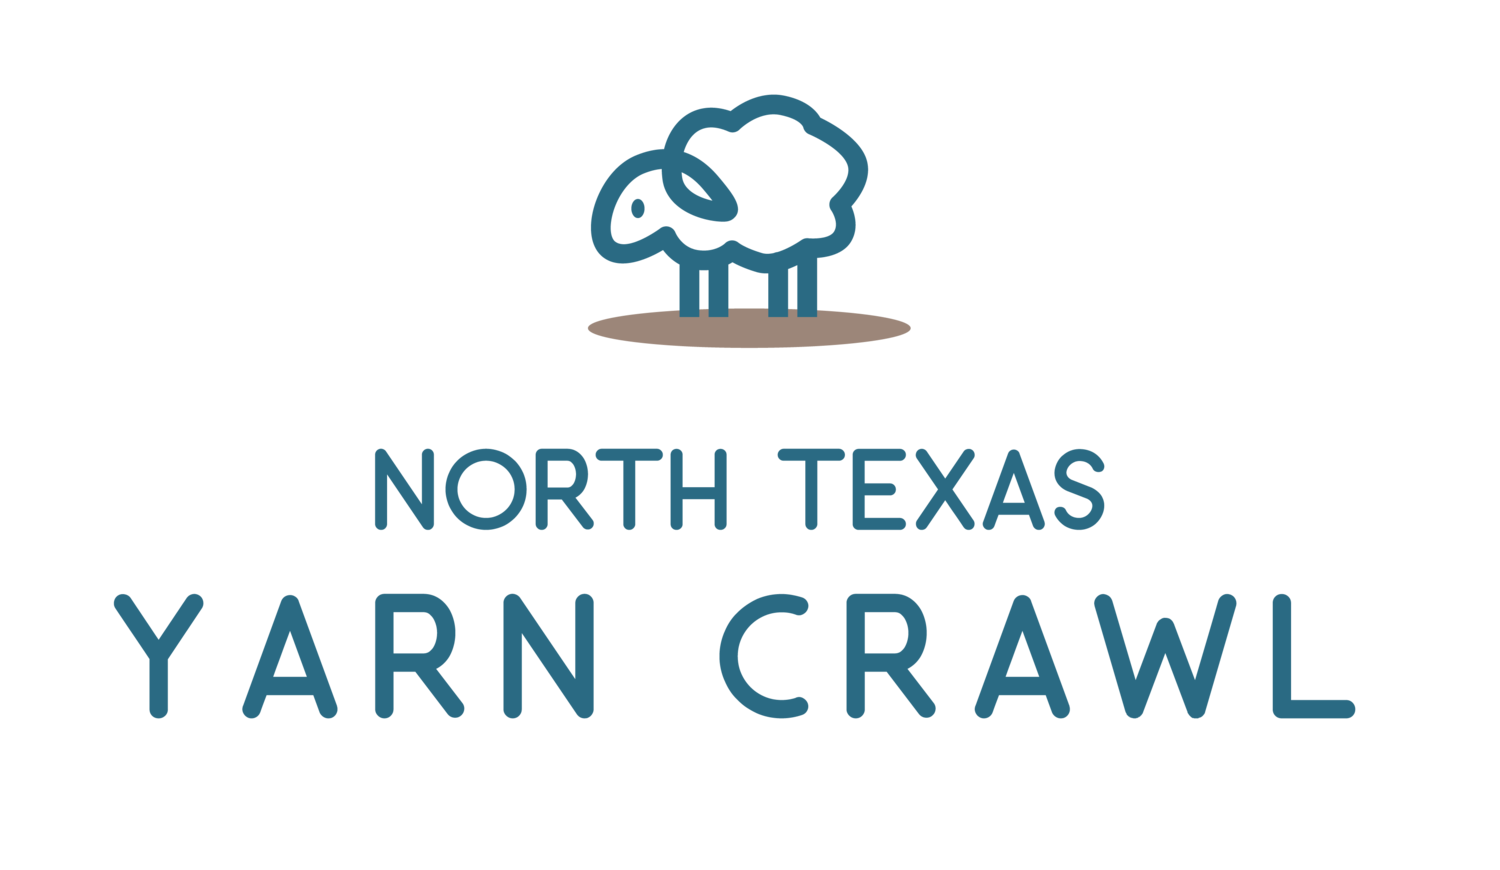 North Texas Yarn Crawl